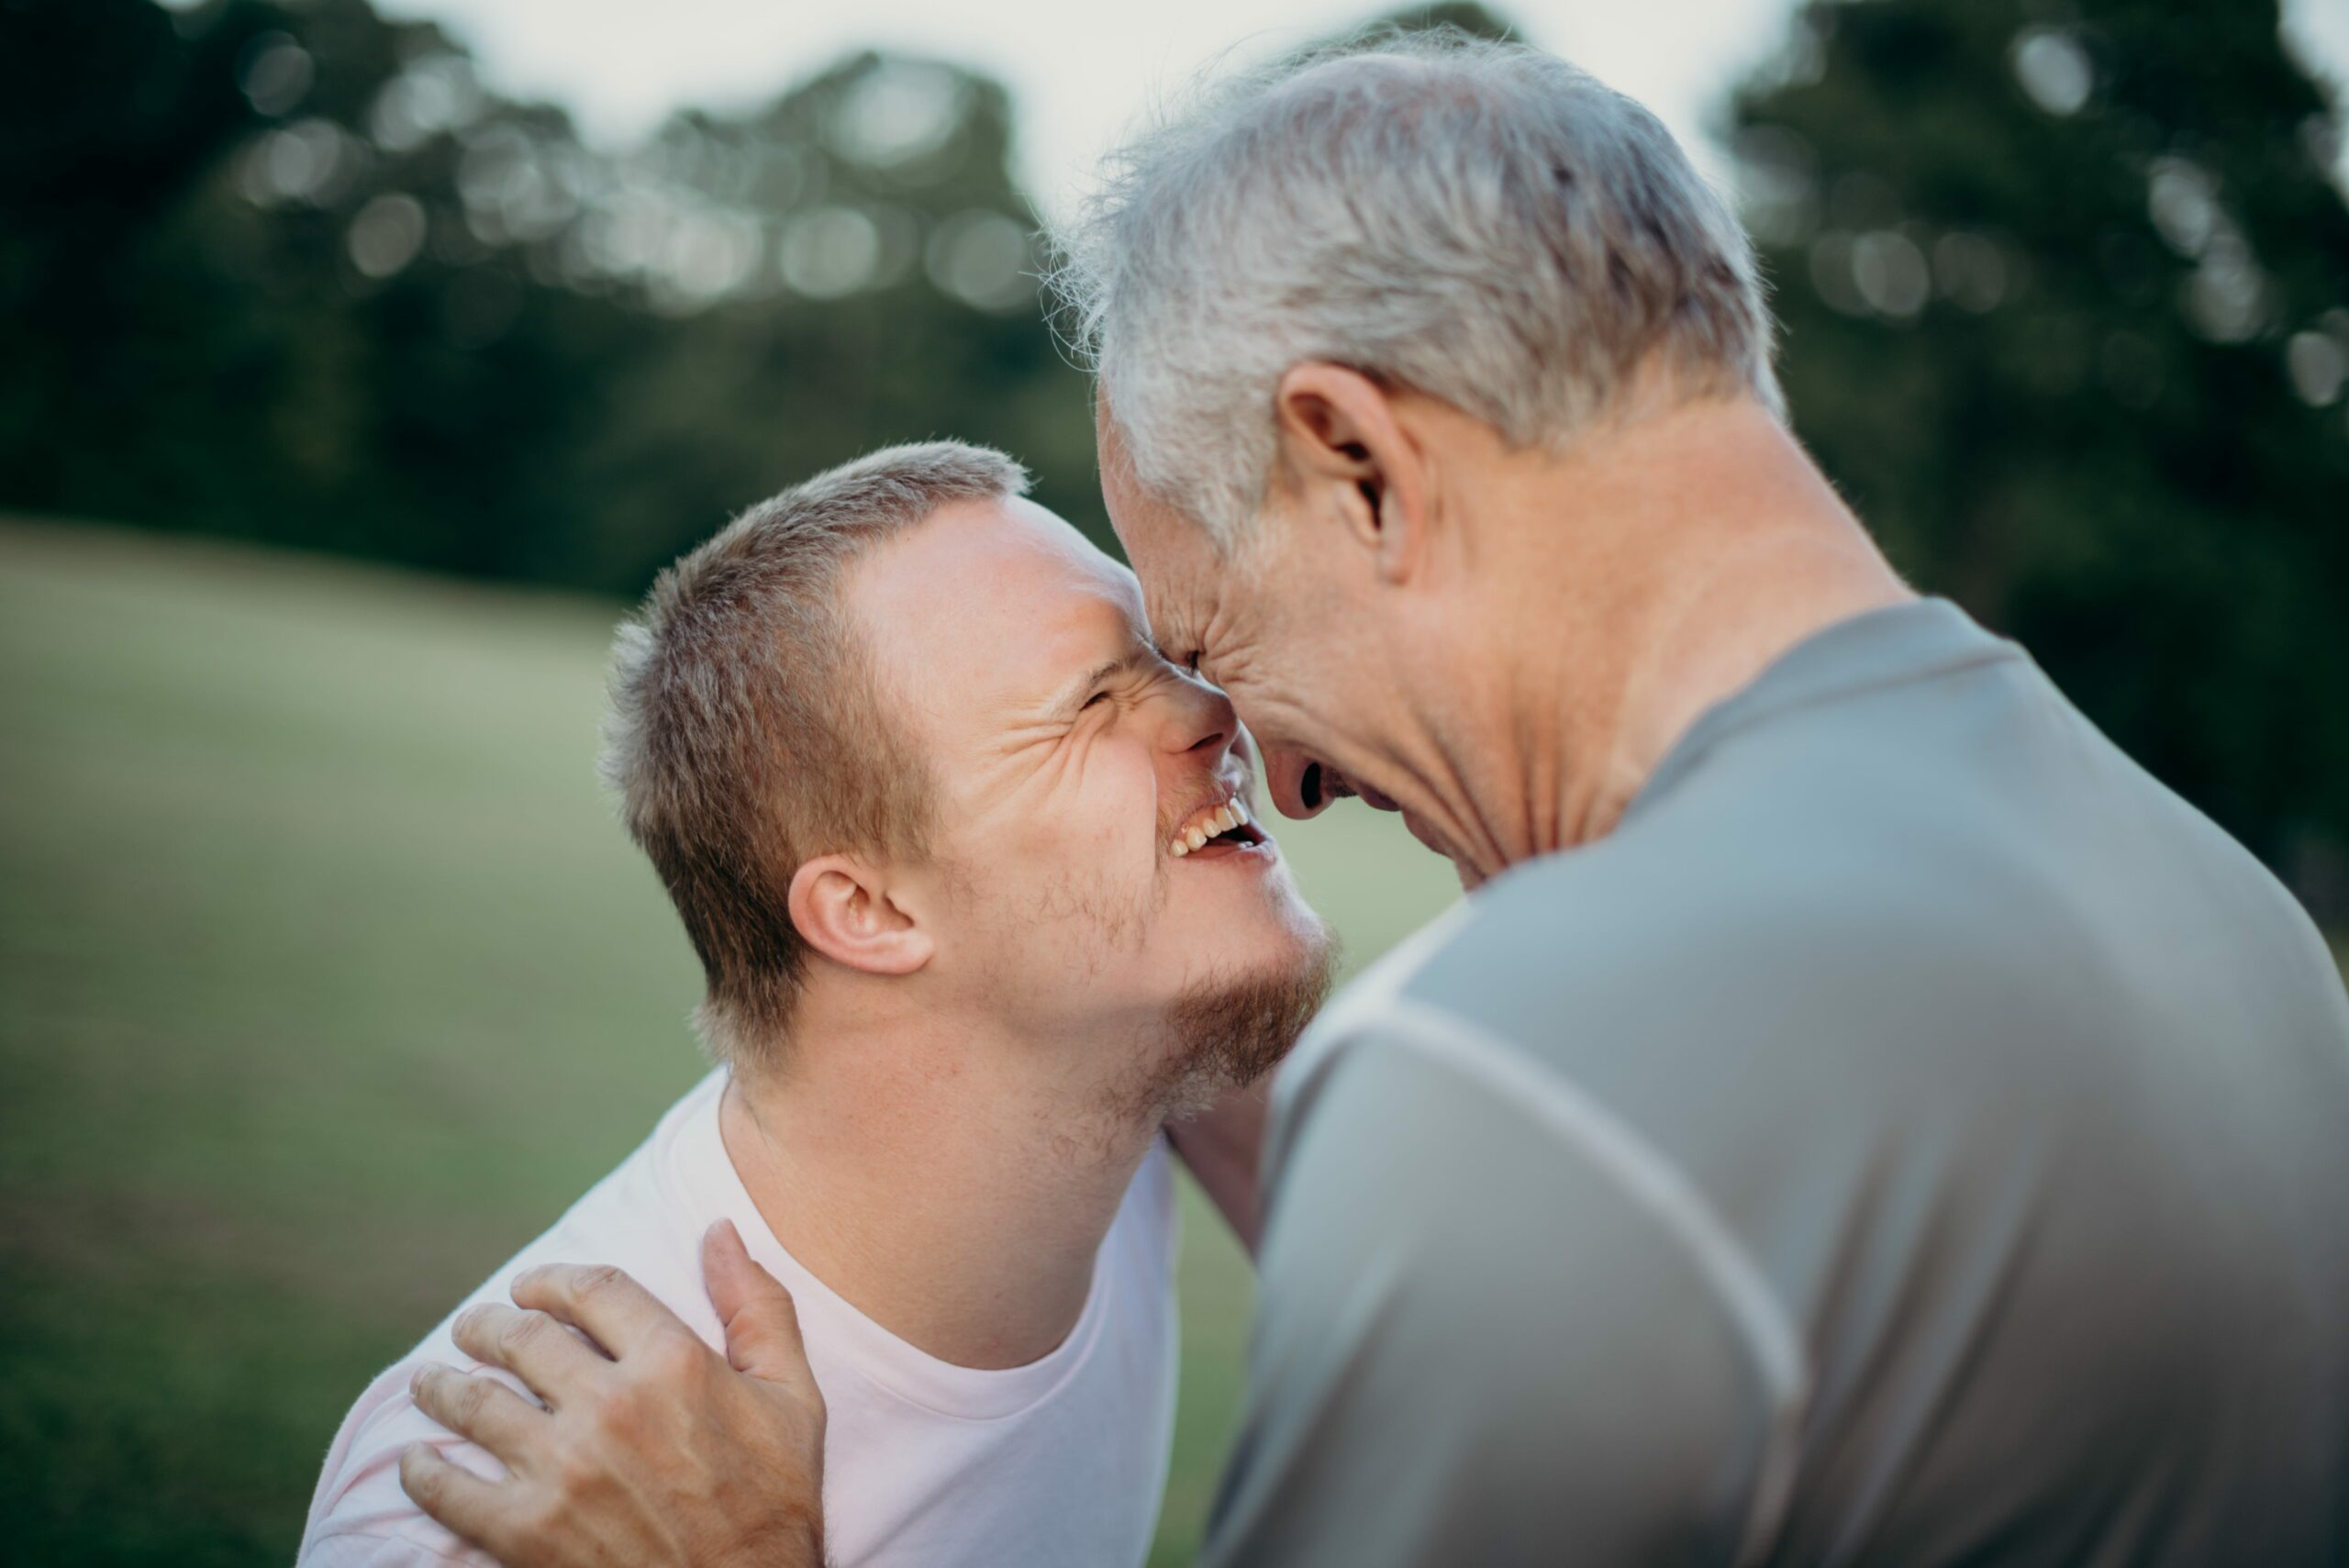 SSI for Children with Special Needs | 2021 Guide to Understanding Social Security